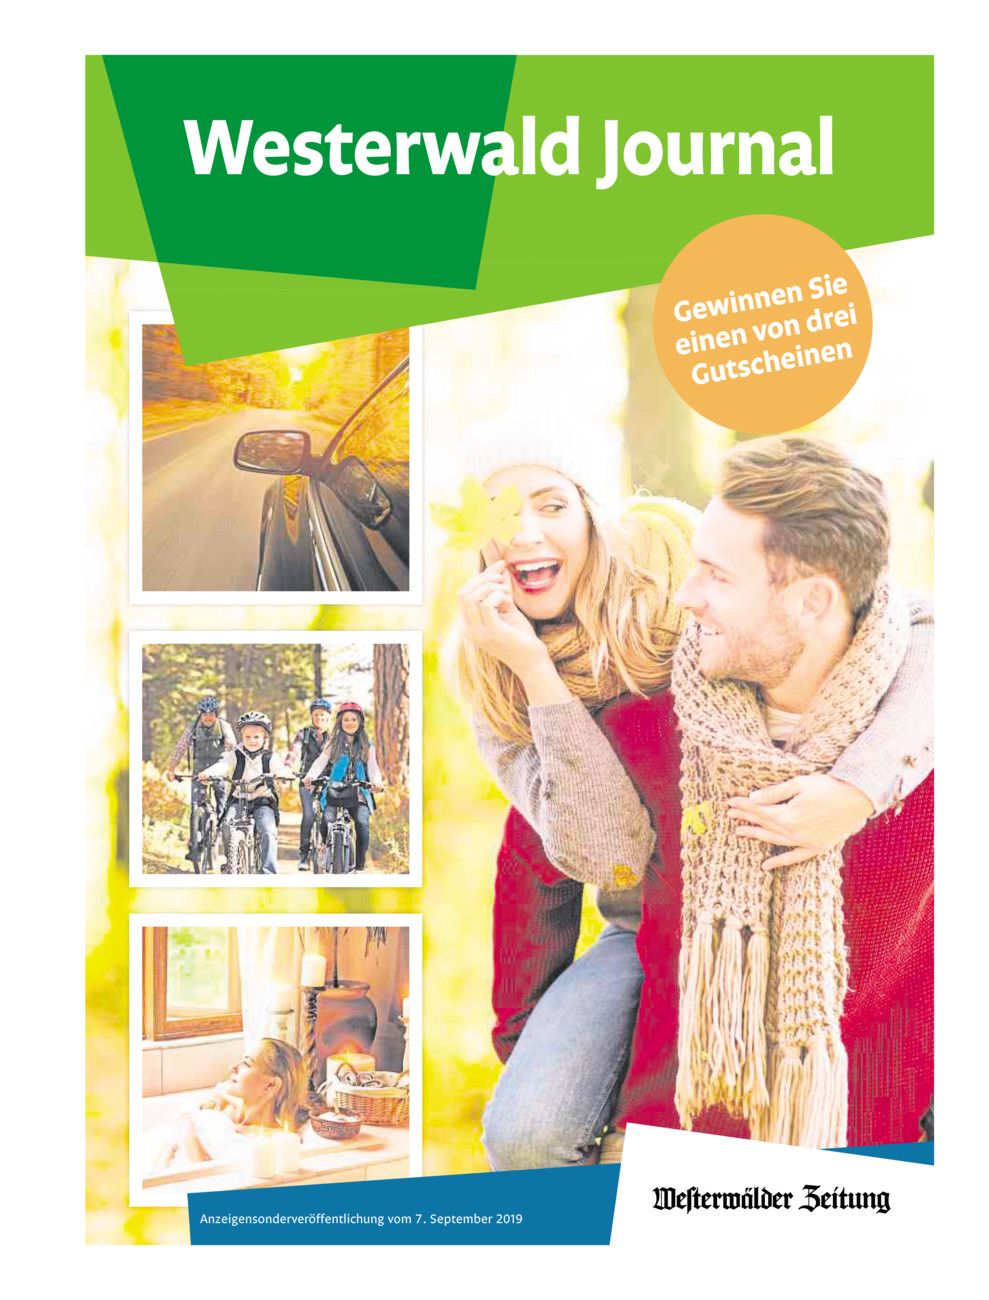 Westerwald Journal 7.9.2019